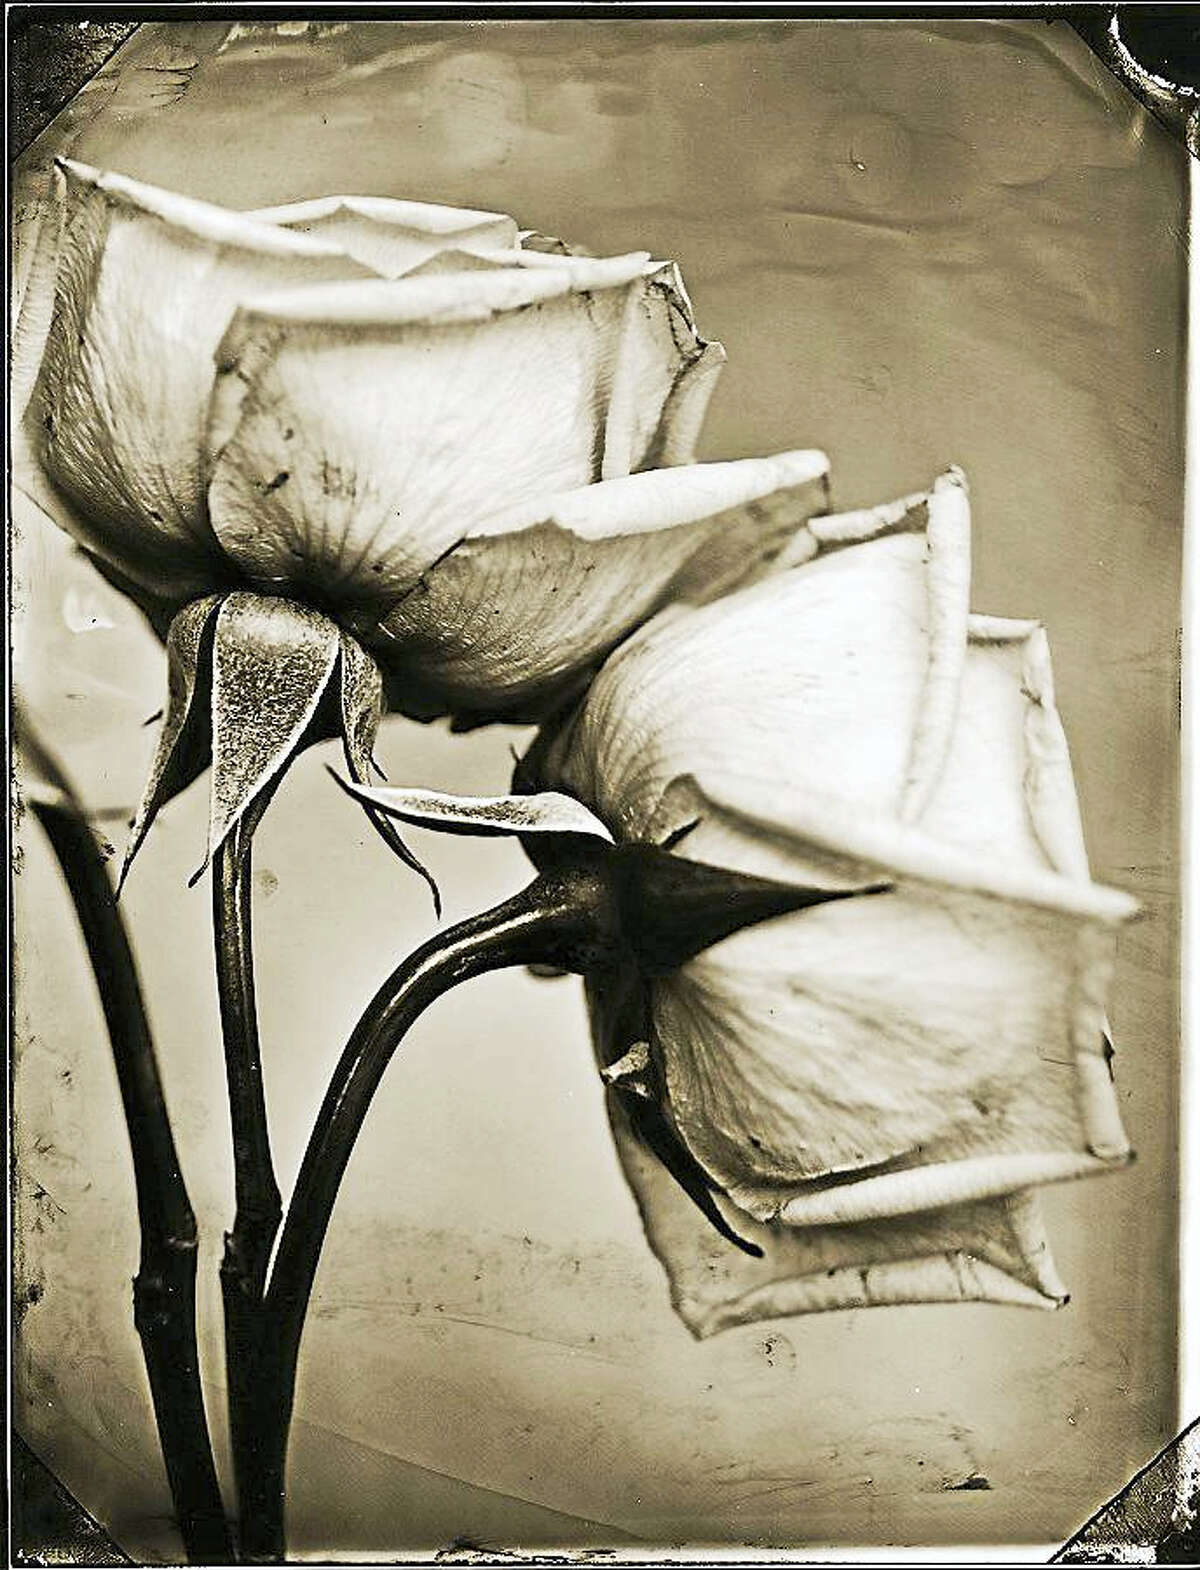 """Tom Baril (b. 1952). Two Roses, 2002. Gelatin silver print from wet-plate glass negative. Mattatuck Museum; Gift of Kevin McNamara and Craig Nowak in honor of Nancy Rustico. (Part of """"Black & White"""")"""